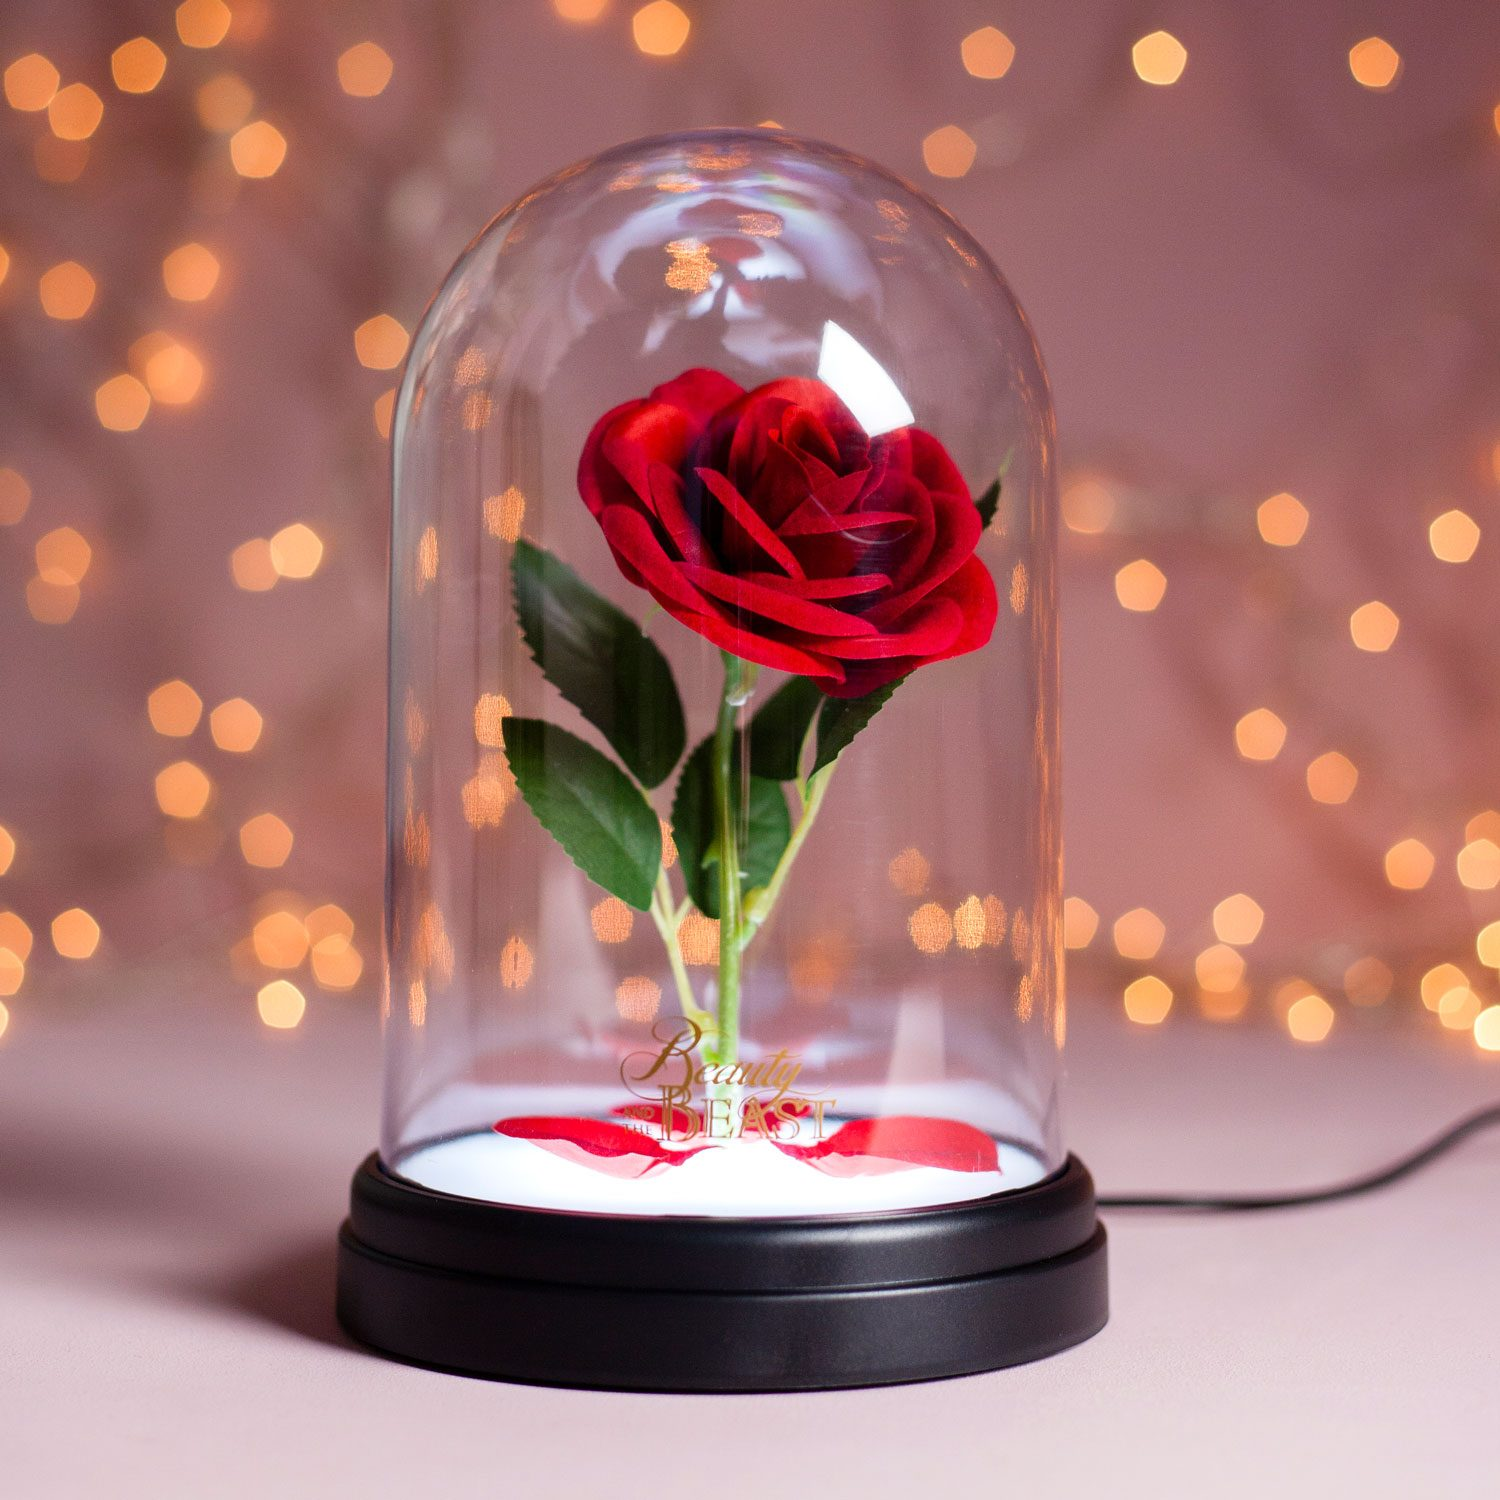 Disney Enchanted Rose Lamp